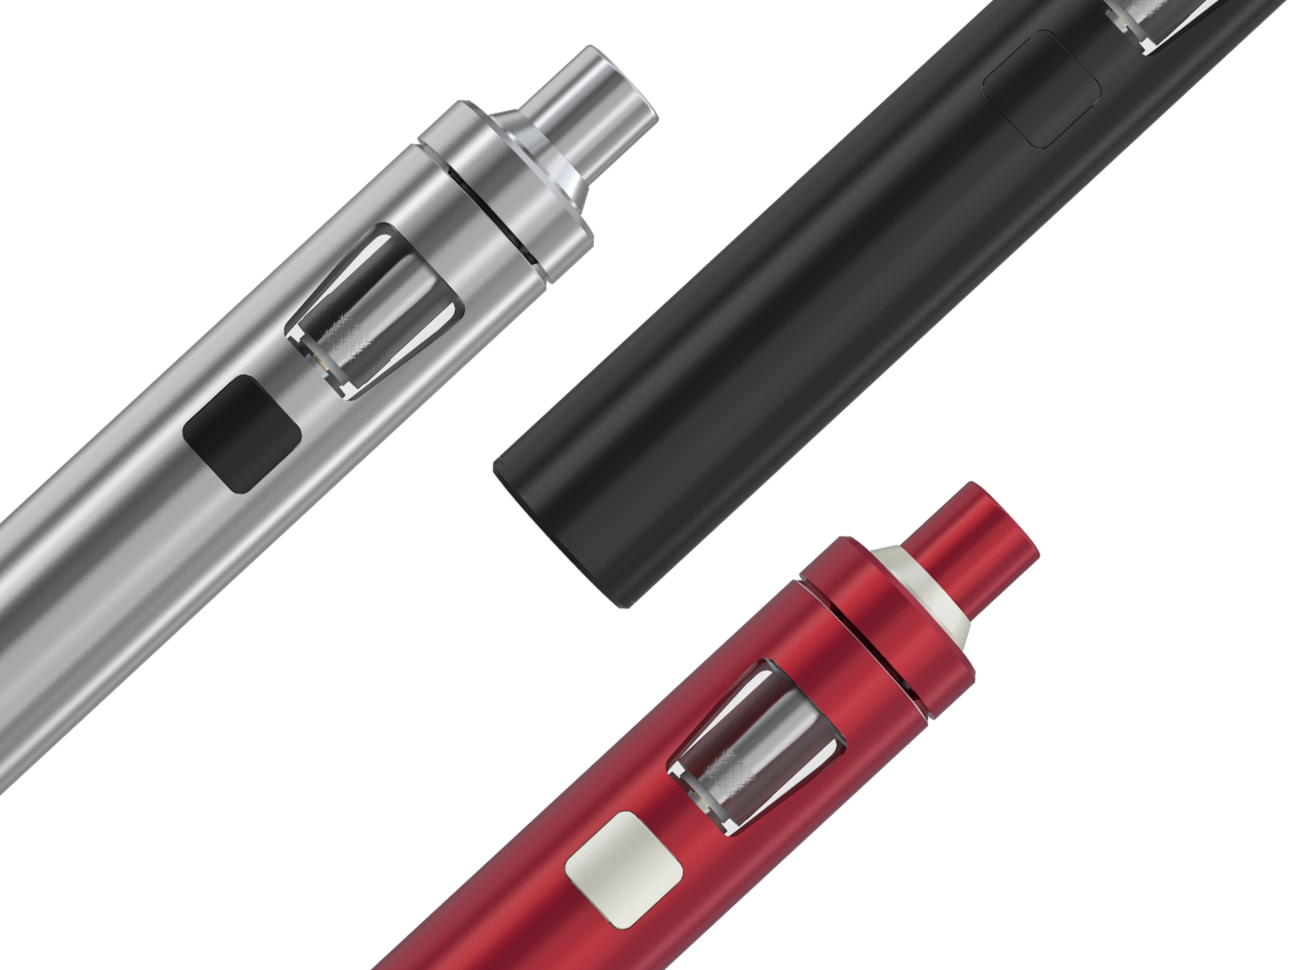 Joyetech eGo AIO D22 XL in VapeSourcing